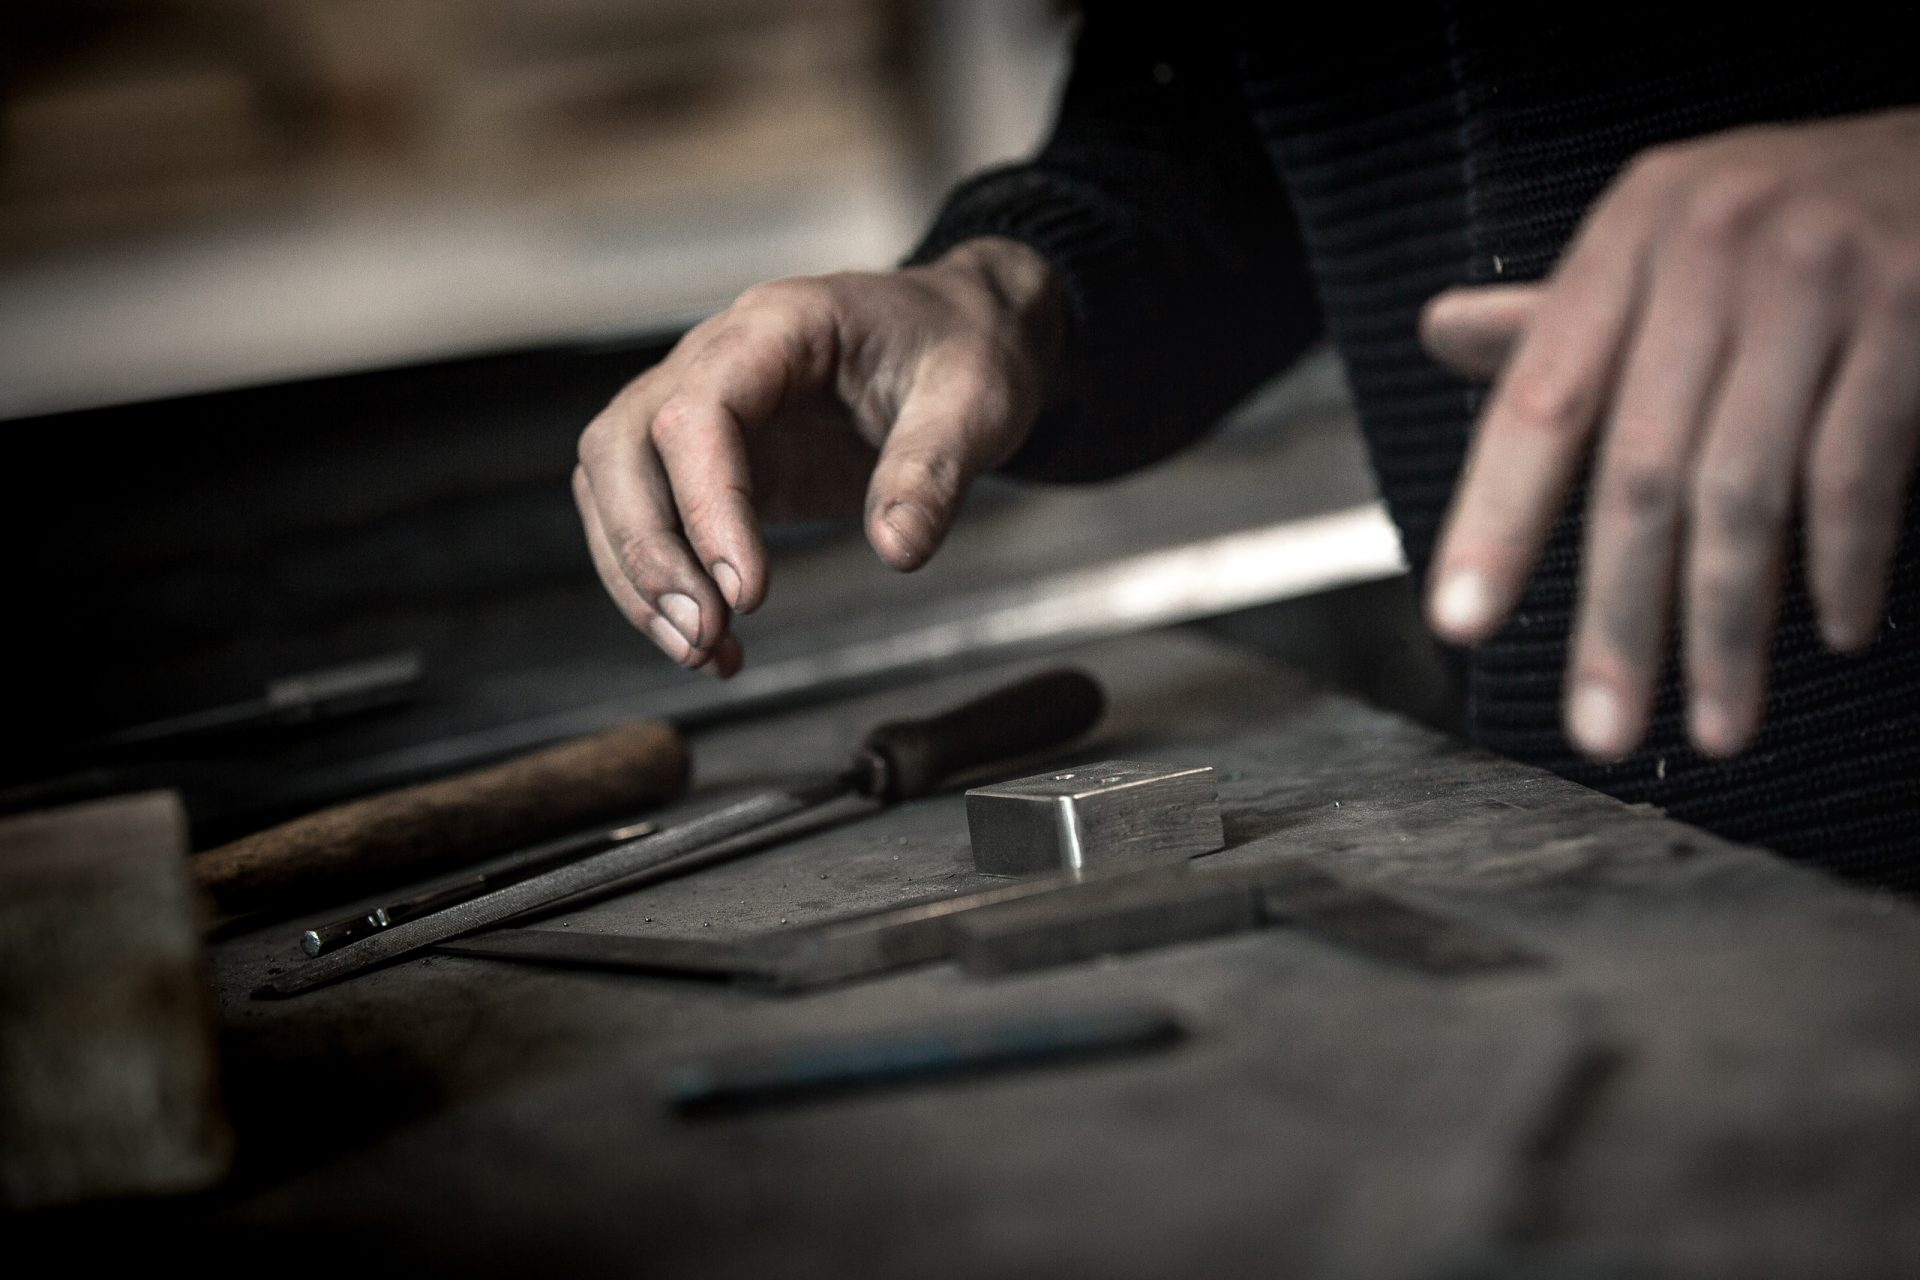 Hands and tools